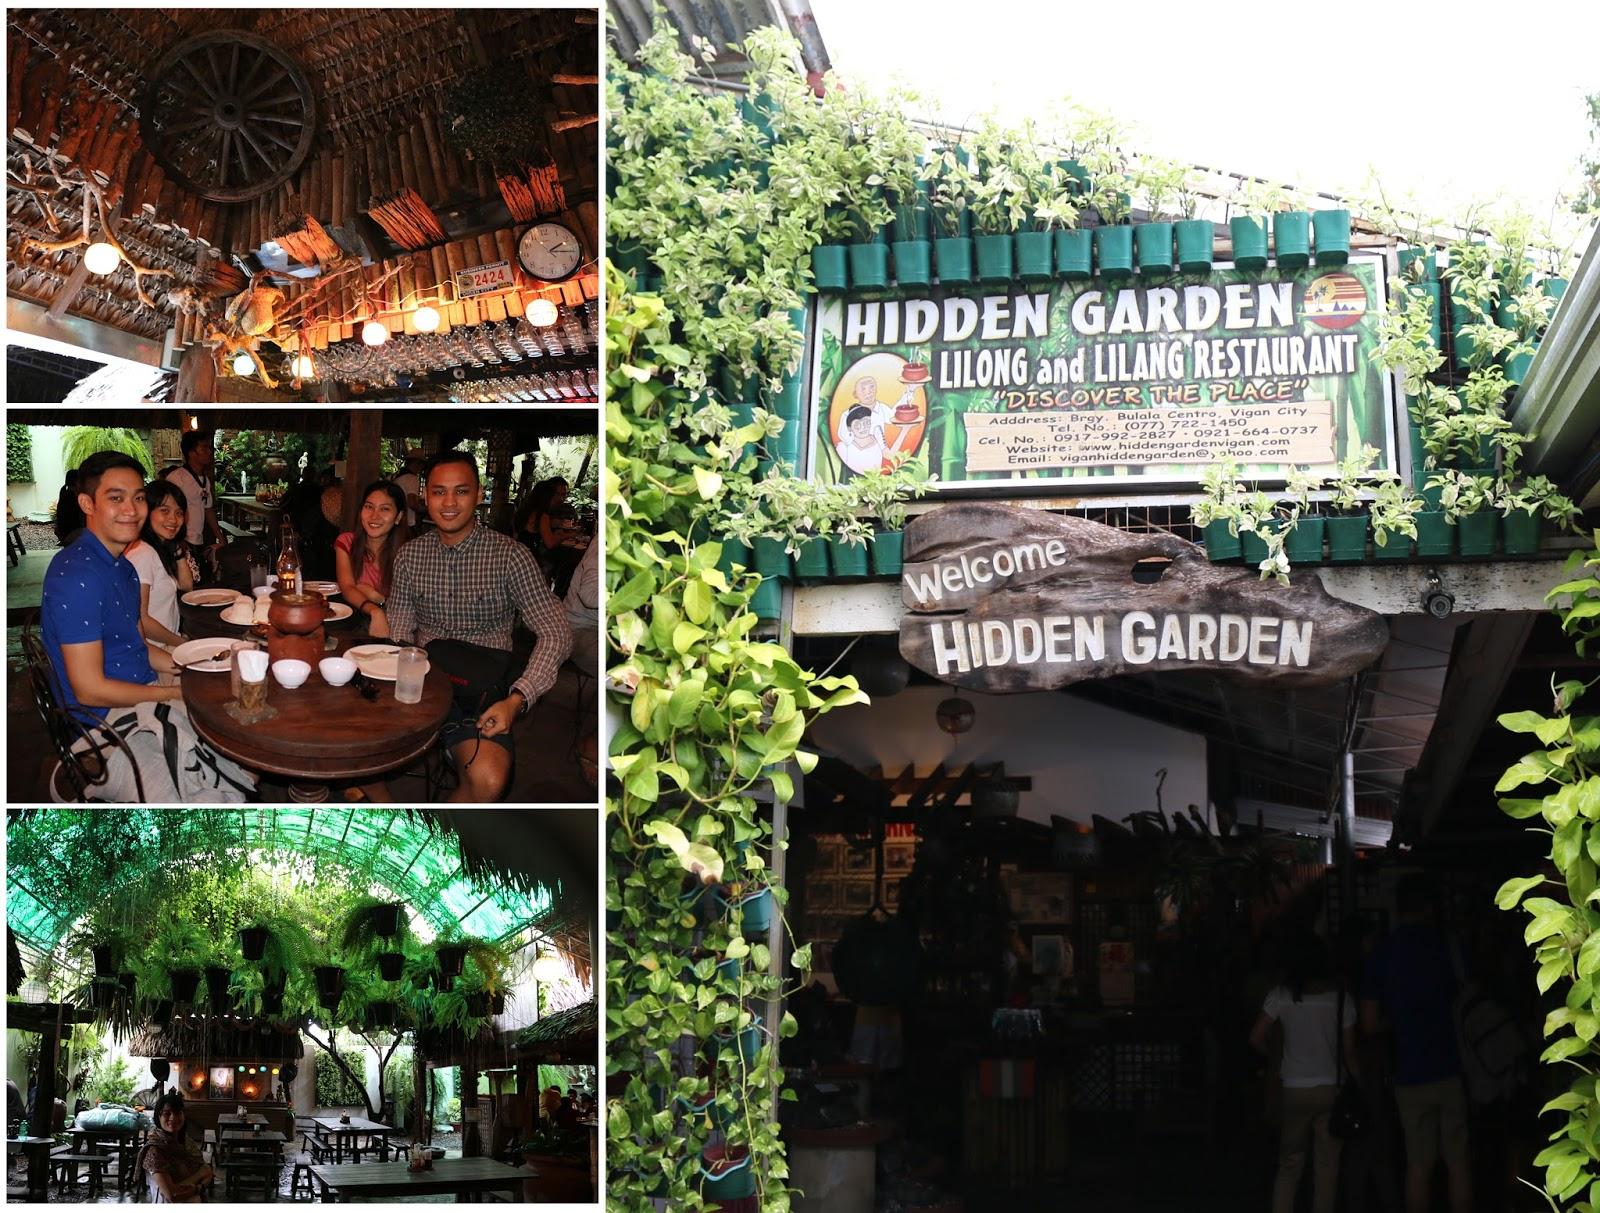 travel Vigan Ilocos Tour Sur Philippines tour tourism Hidden Garden restaurant